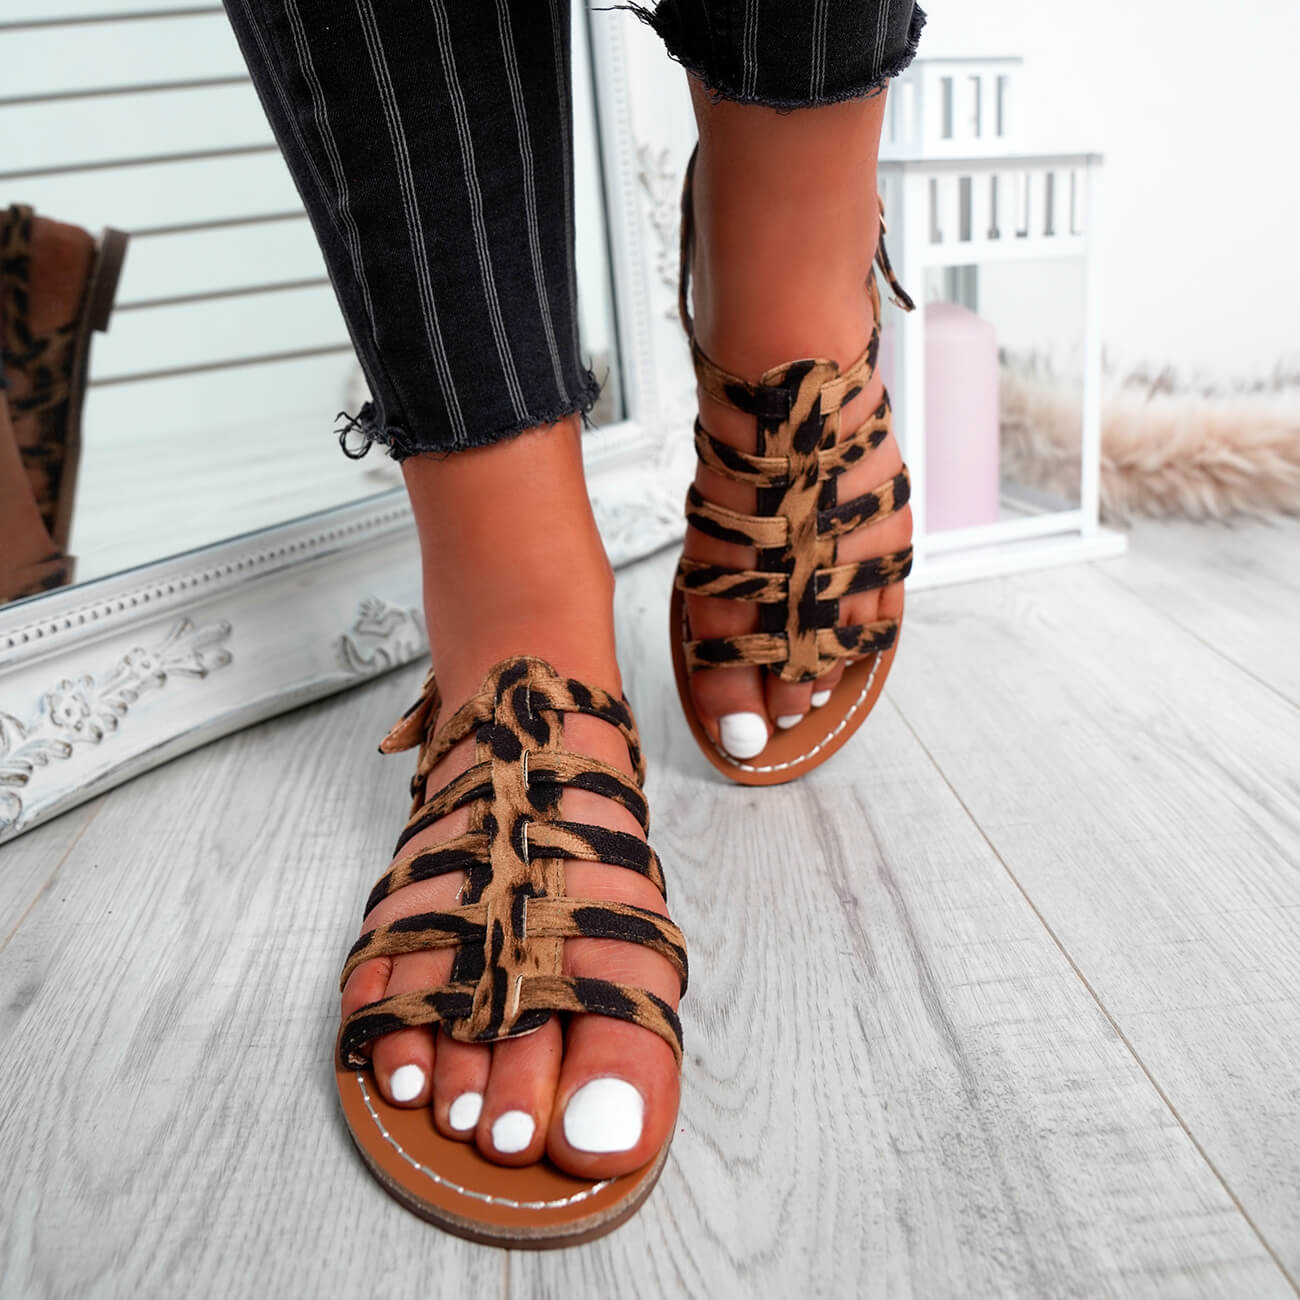 WOMENS-LADIES-BUCKLE-STRAP-FLAT-SUMMER-SANDALS-CASUAL-HOLIDAY-COMFY-SHOES-SIZE thumbnail 25